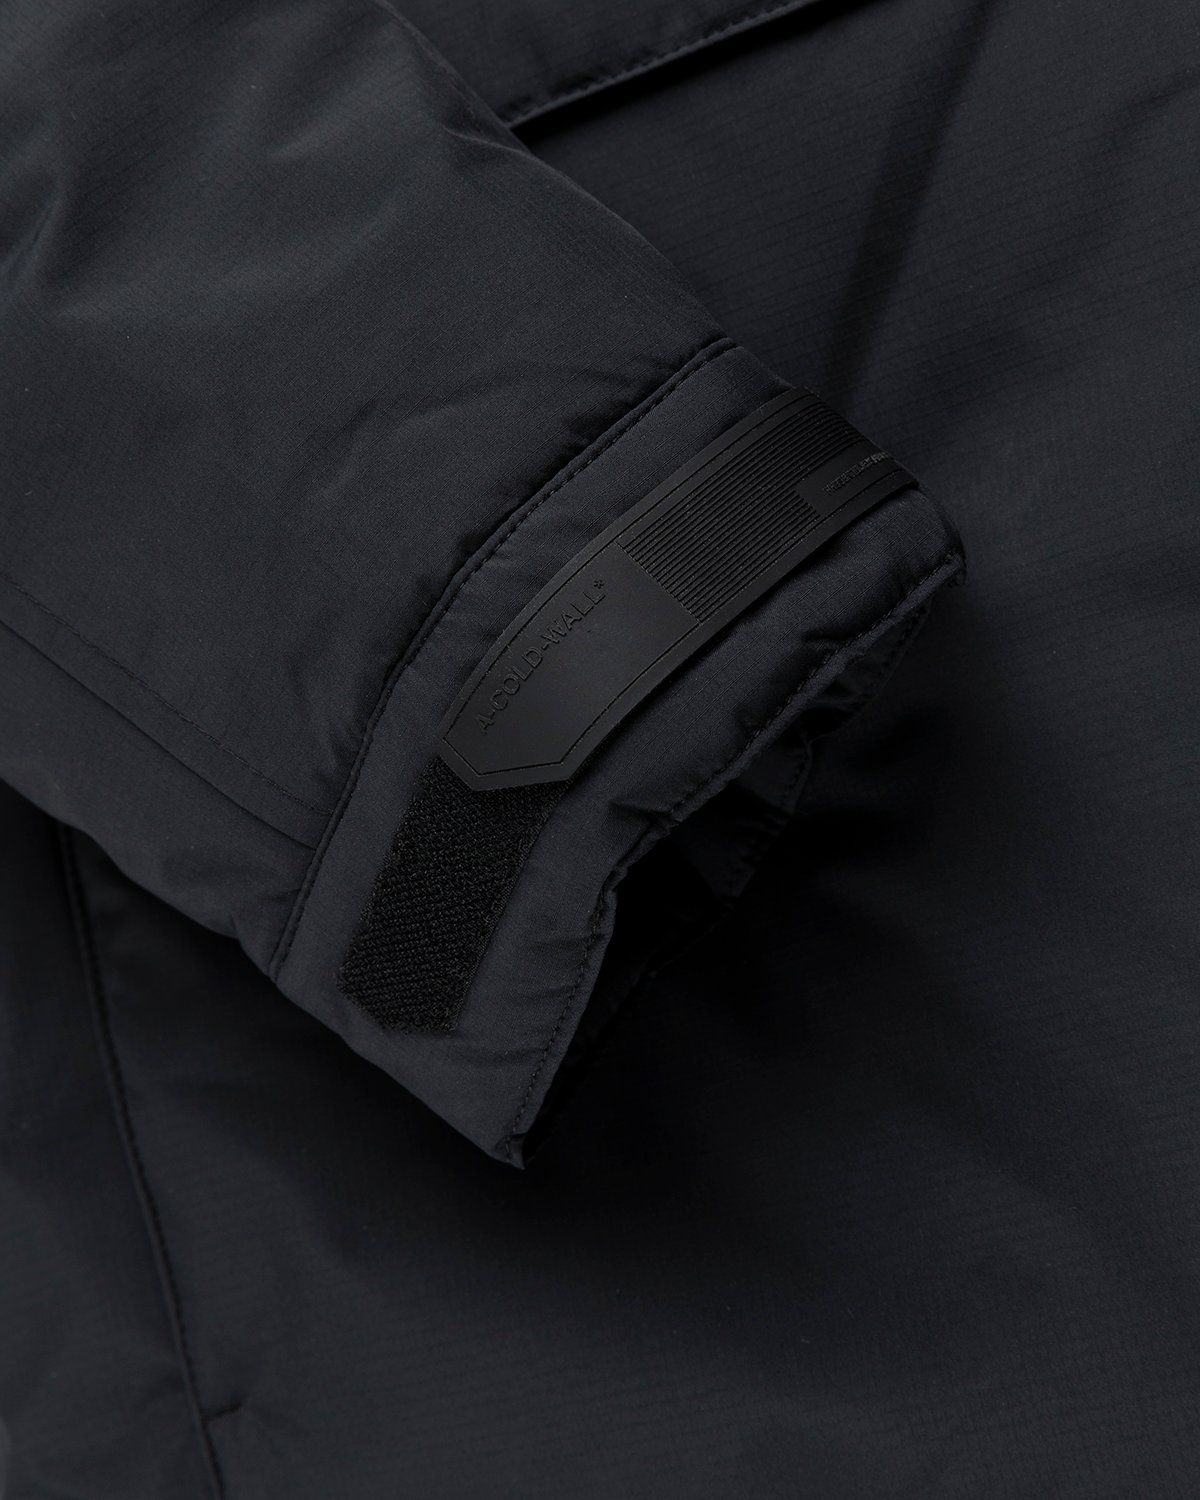 A-COLD-WALL* – Technical Bomber Black - Image 5